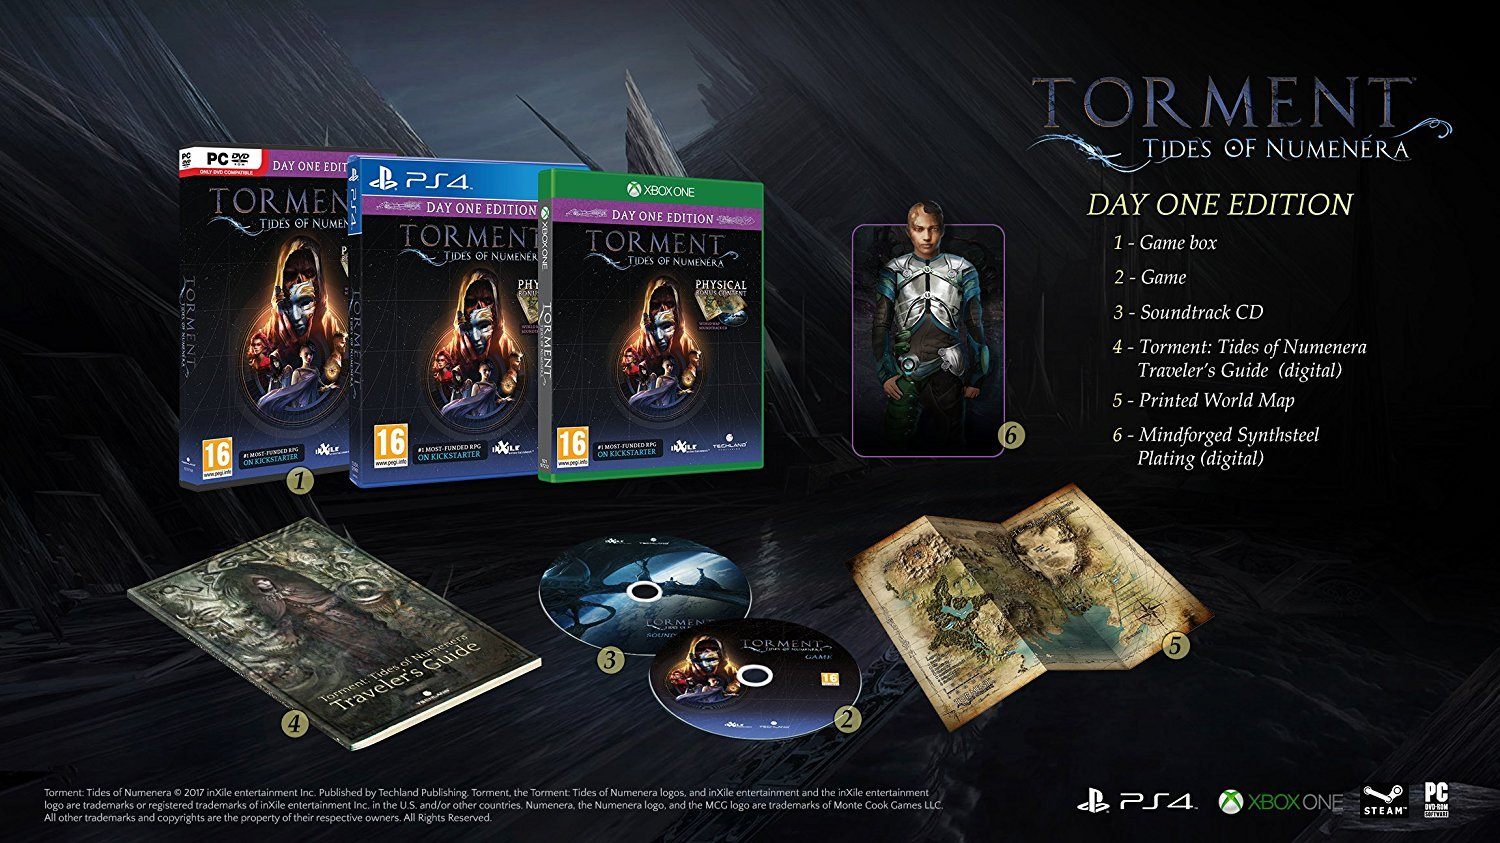 Torment: Tides of Numenera Day One Edition for PC Games image